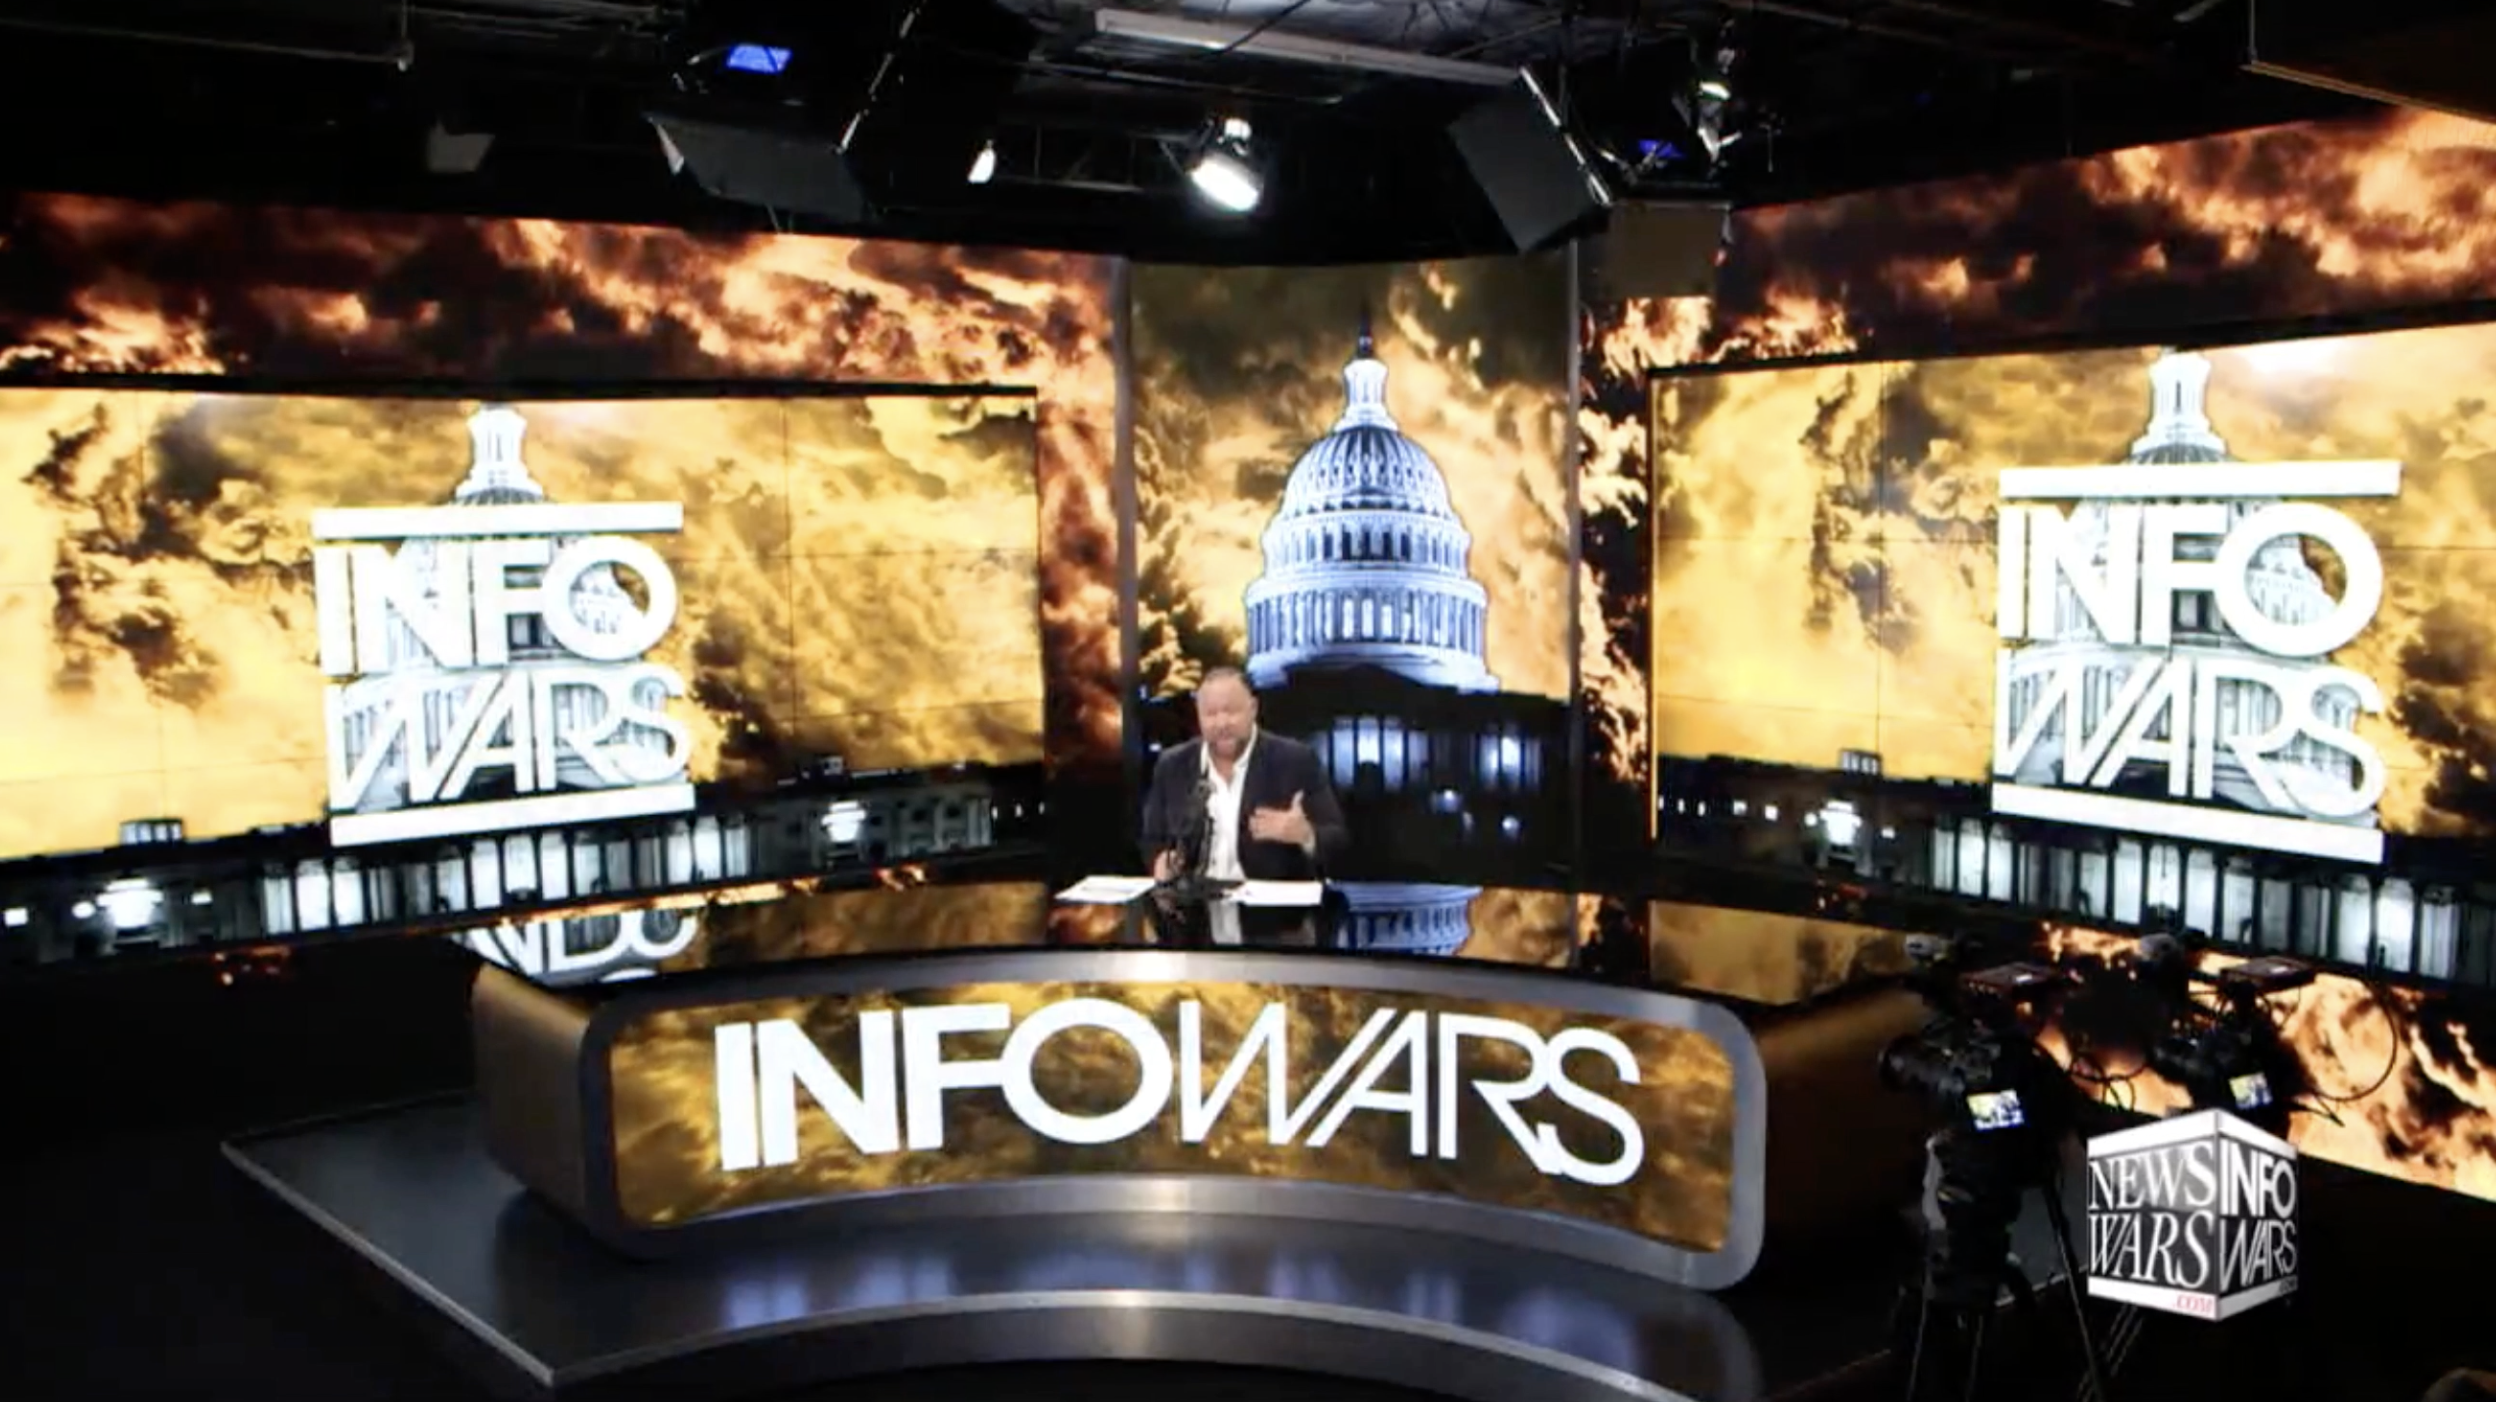 Alex Jones Infowars StudioFire 2 19 2020